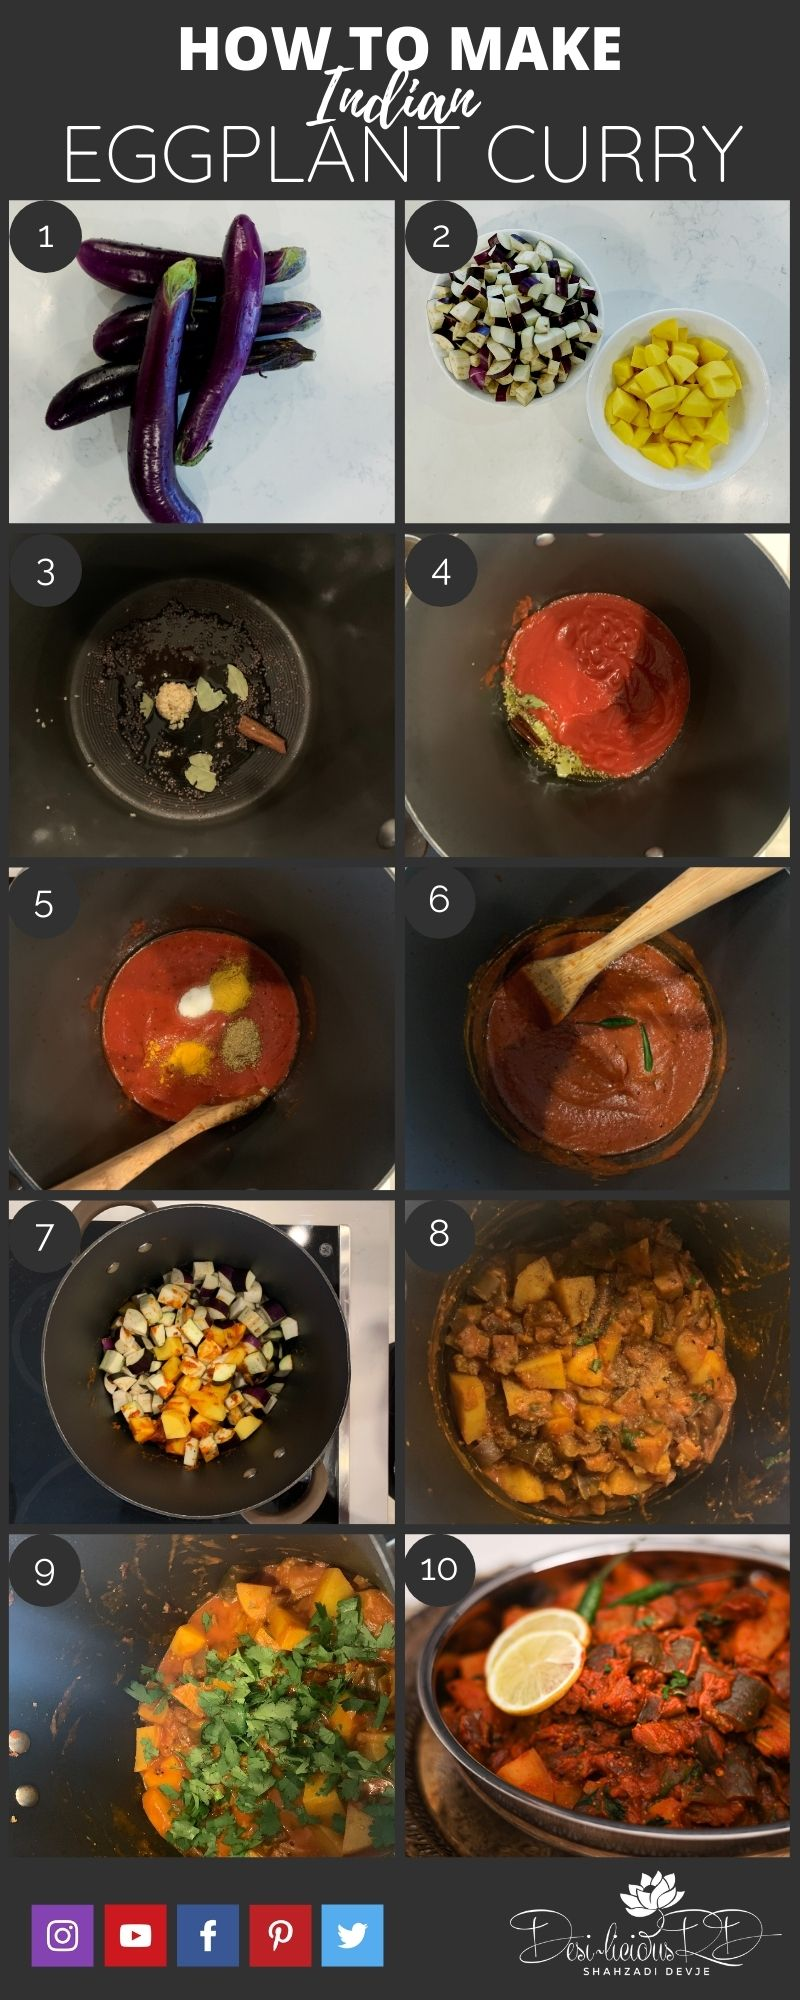 step by step preparation shots of Indian eggplant curry in one pot.